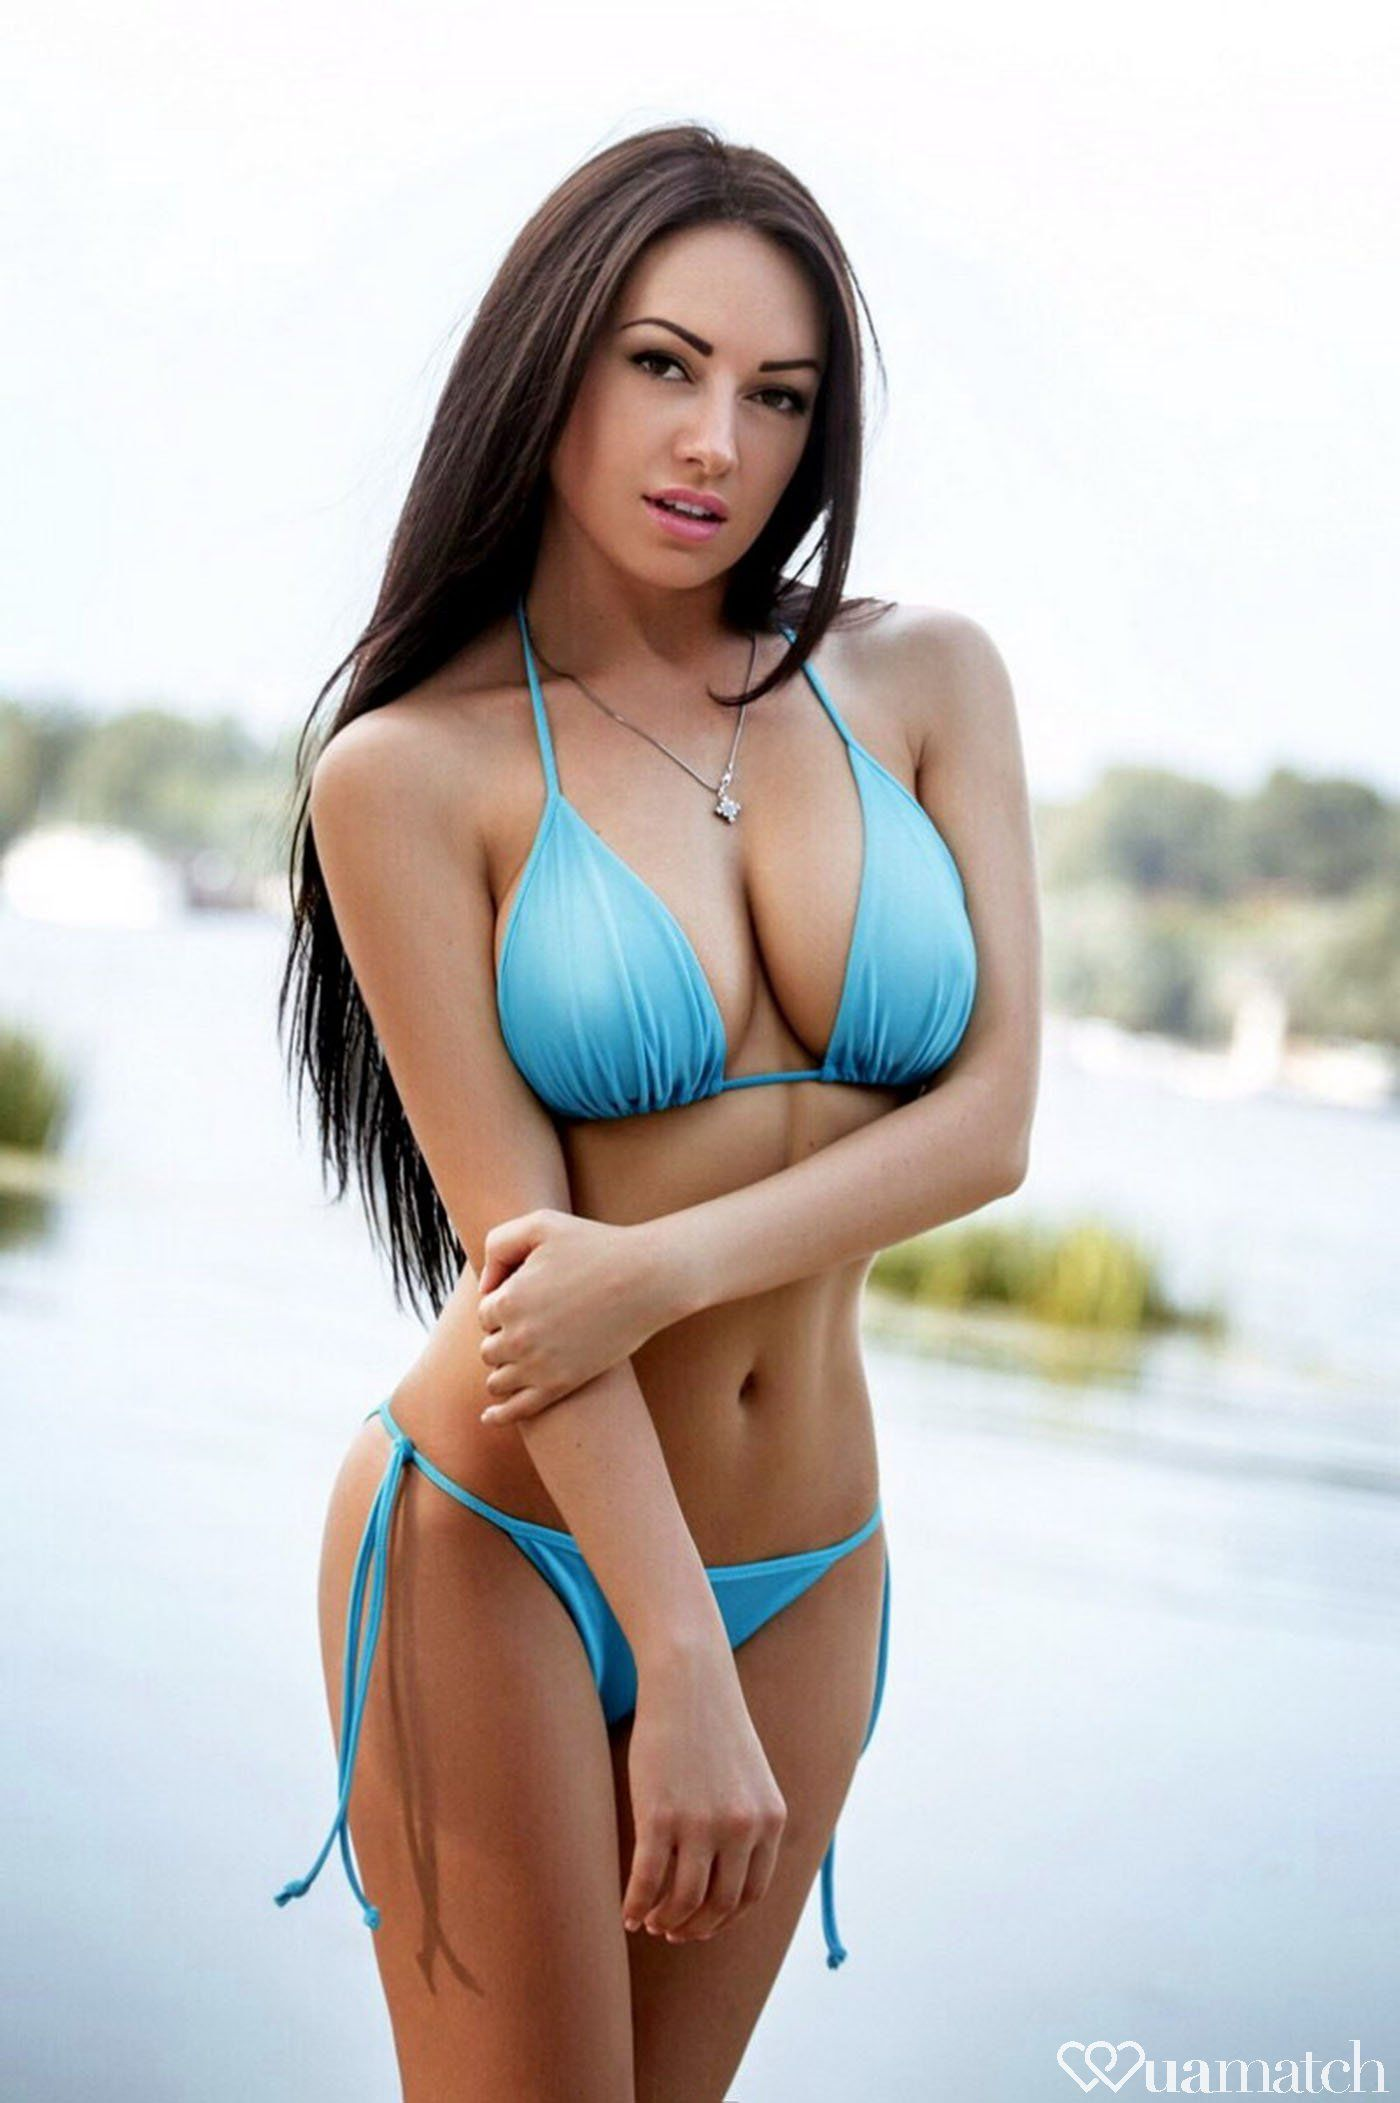 Beautiful women russia ukraine bikini